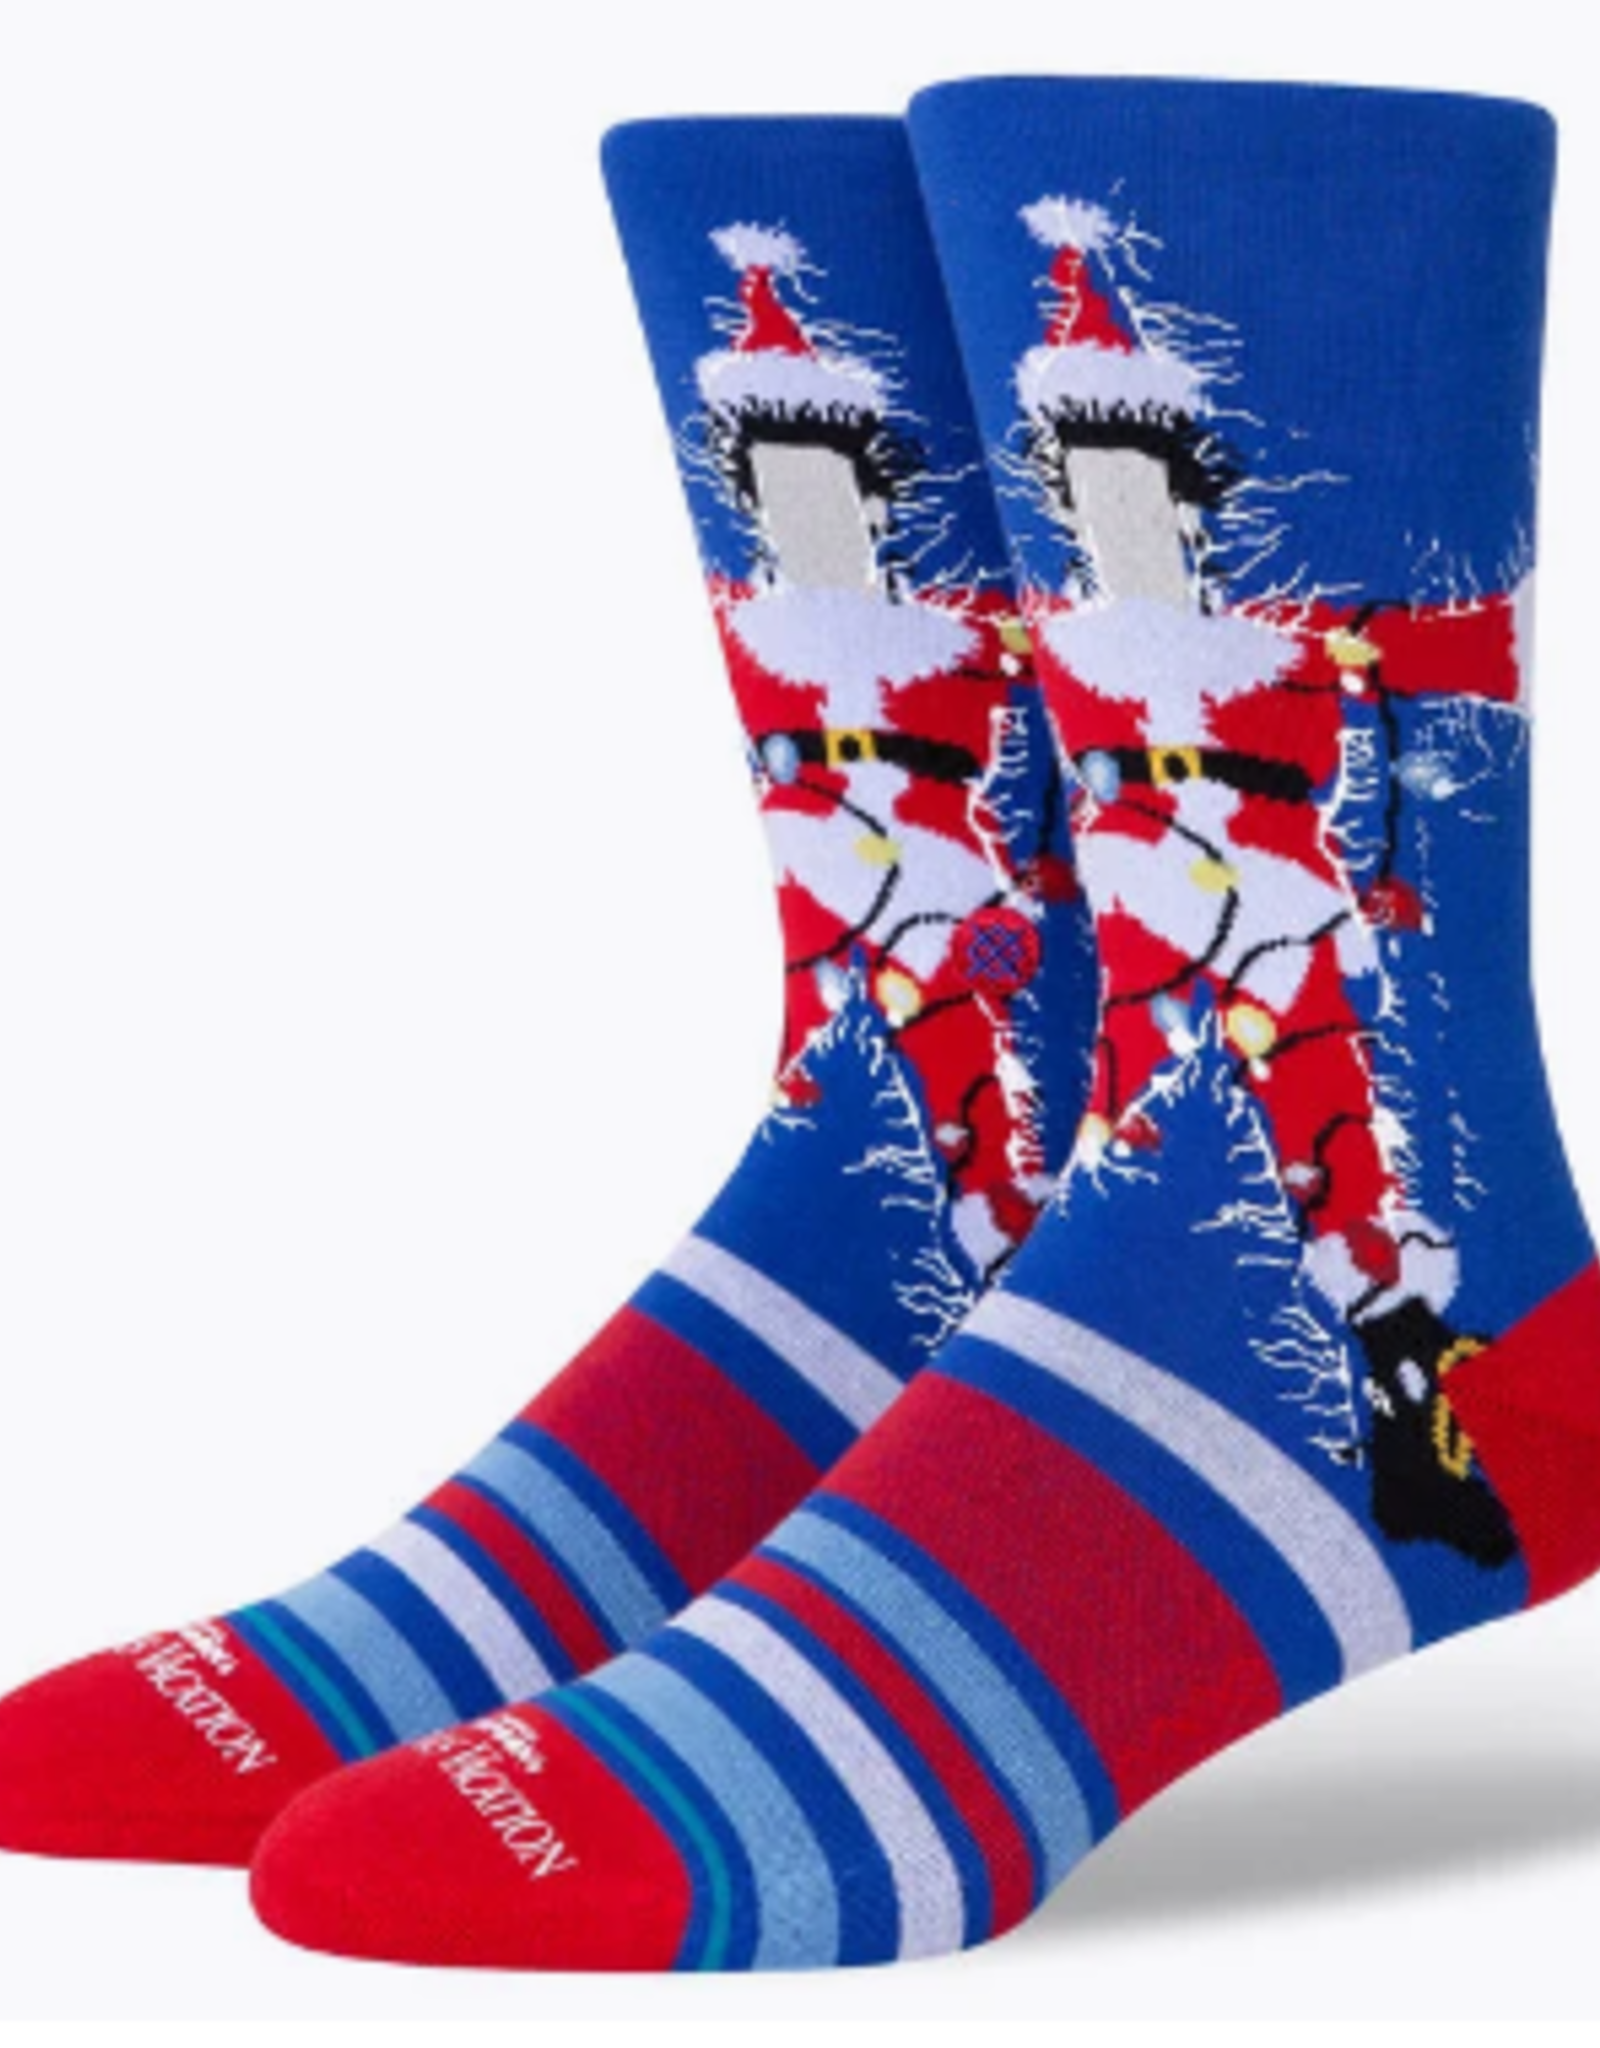 STANCE STANCE COMMON SOCK CHRISTMAS VACATION BLUE LARGE